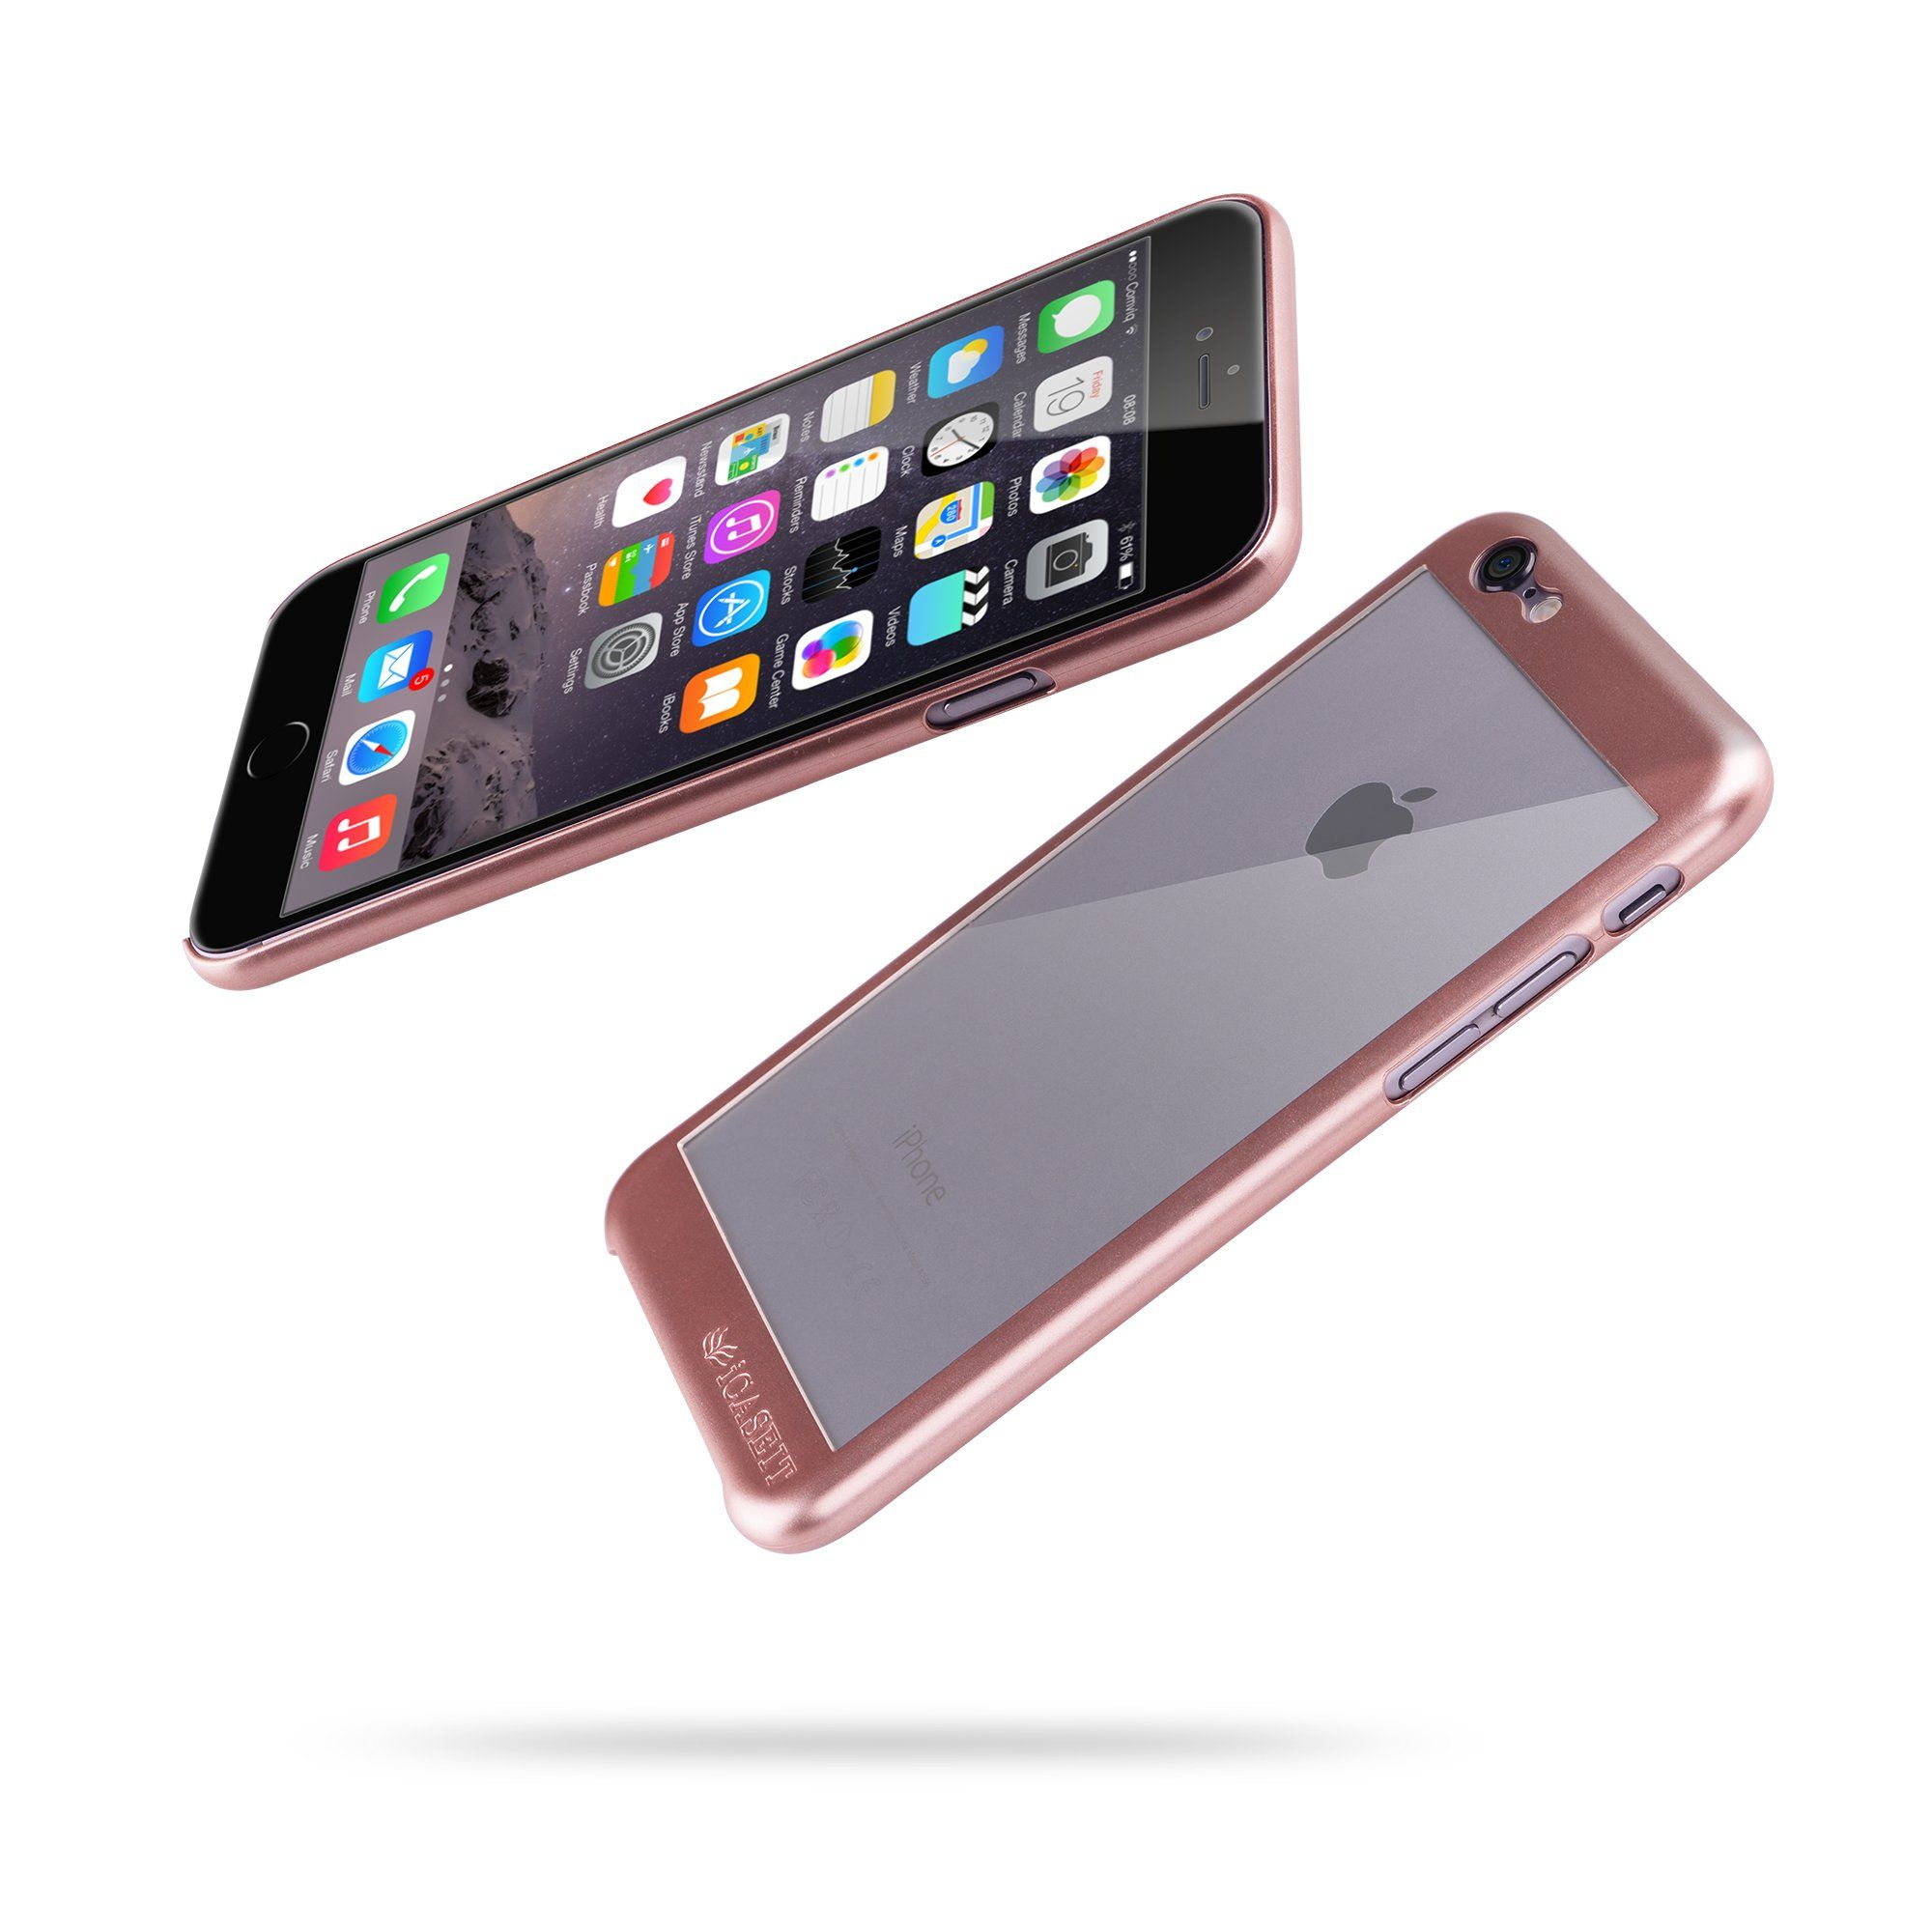 Amazon iPhone 6s Case iCASEIT Bi Glass Case Slim case with Strengthened Glass back ly 0 8mm in Thickness